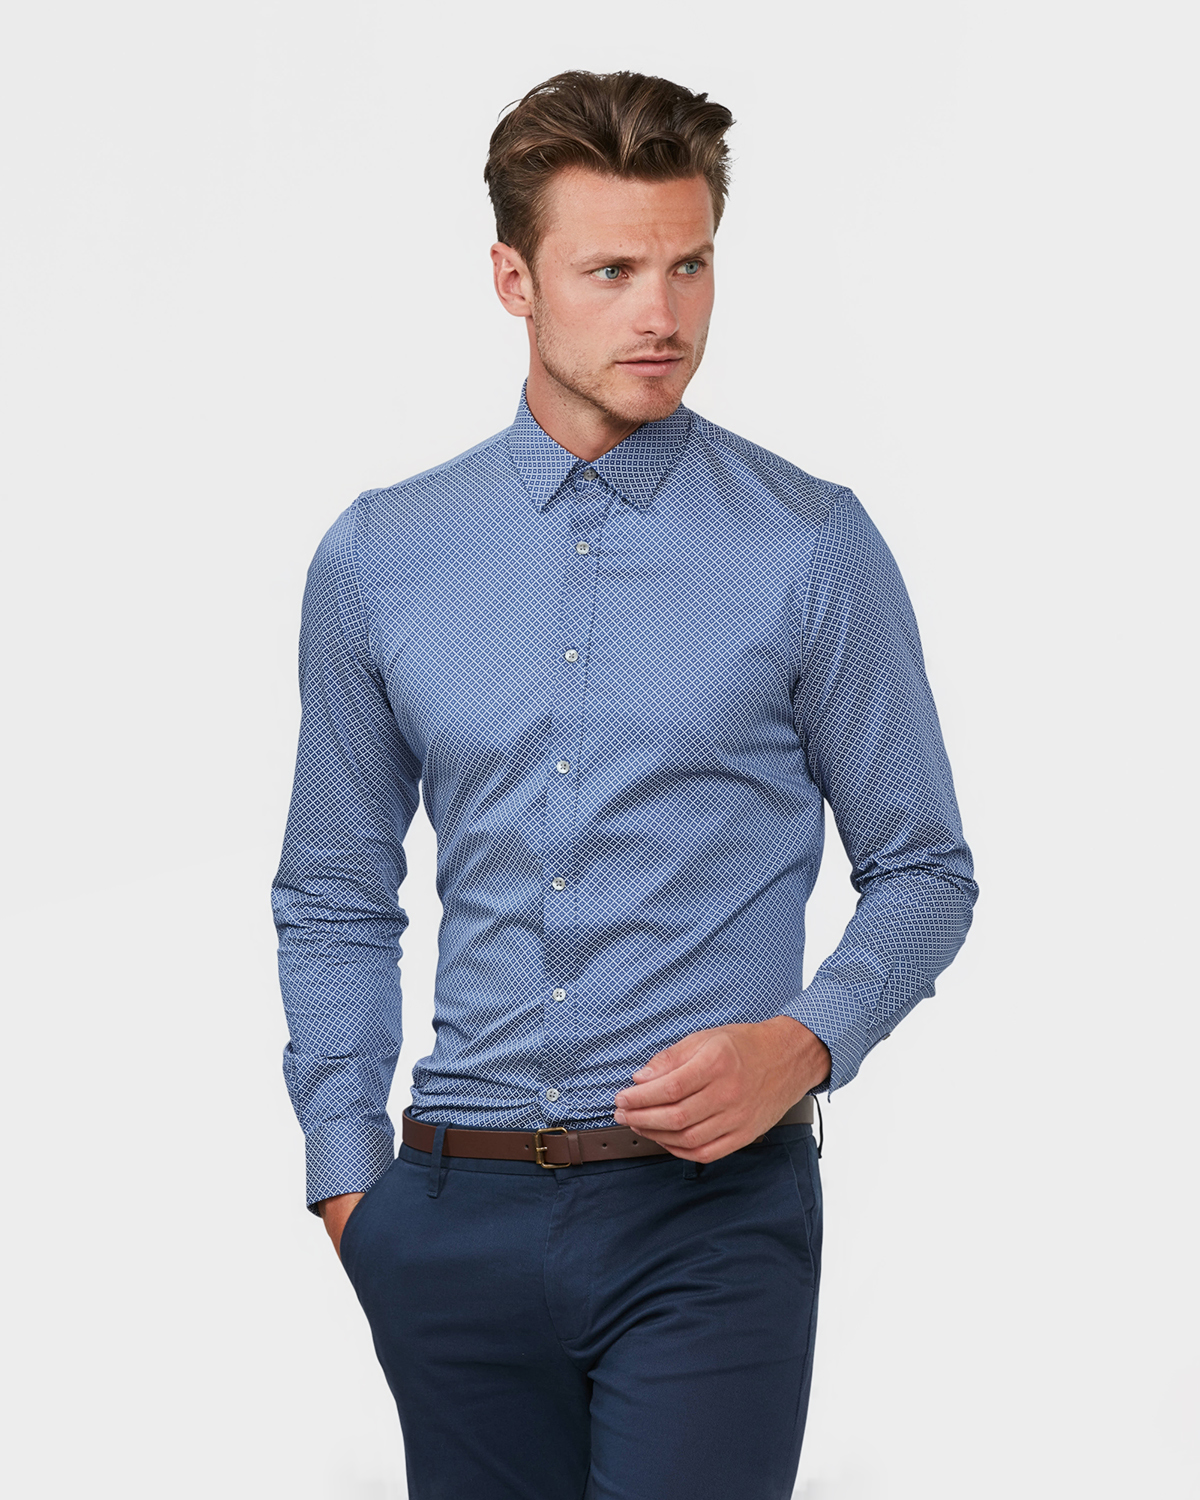 Slim fit (Our sleekest fit, cut shorter and more narrow in the chest and shoulders). % cotton. Button closure at front, button-down collar, buttons at cuff.